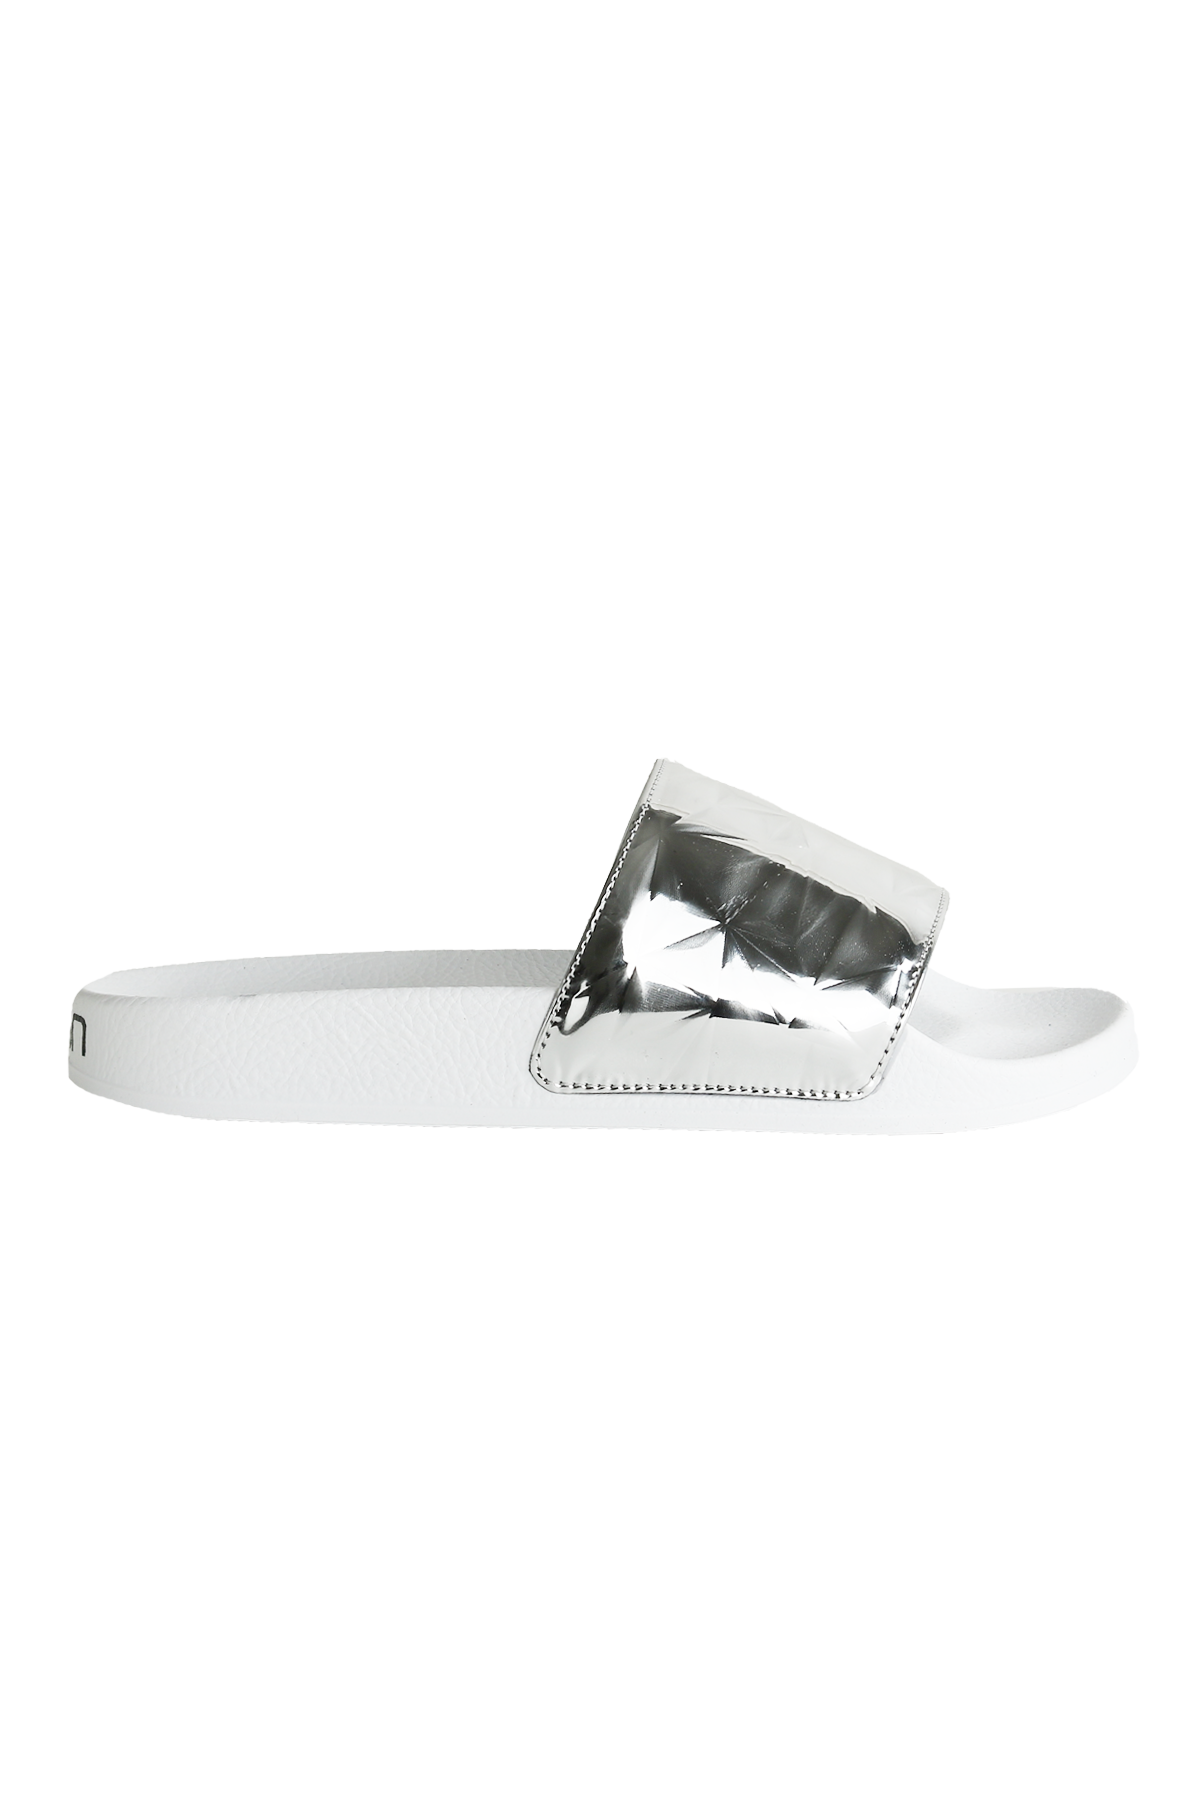 cf429531b2fc RUBBER SLIPPERS - TOWN - Carbone Boutique